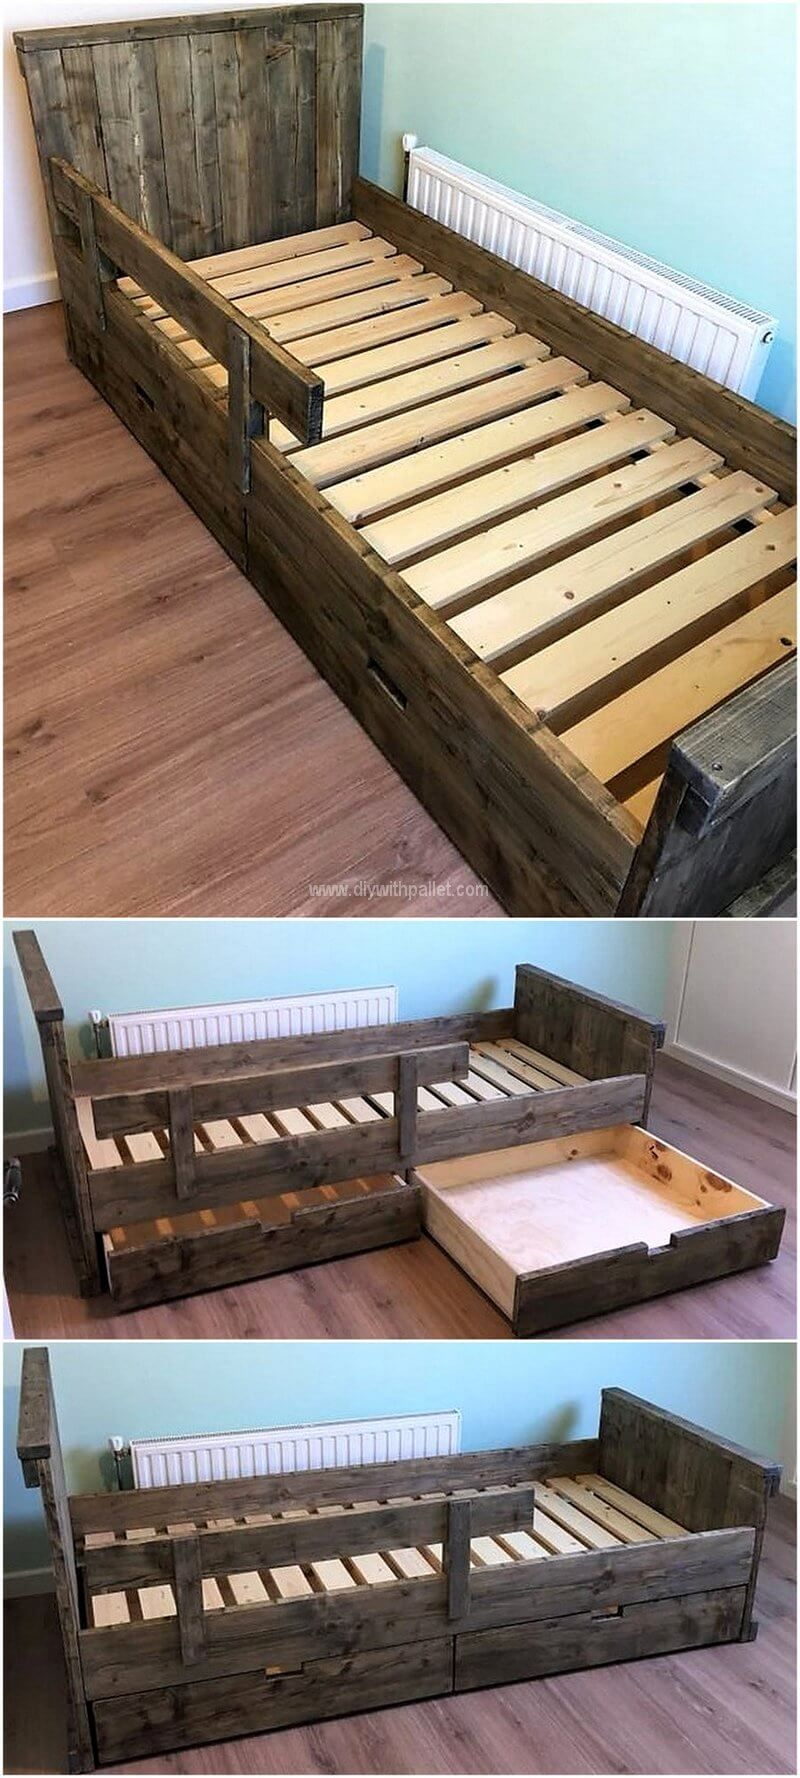 Utilize The Great Wood Pallets To Make A Sensitive Bed Outline Let The Splits And Surface Justify Itself With A C Pallet Diy Recycled Pallets Pallet Furniture